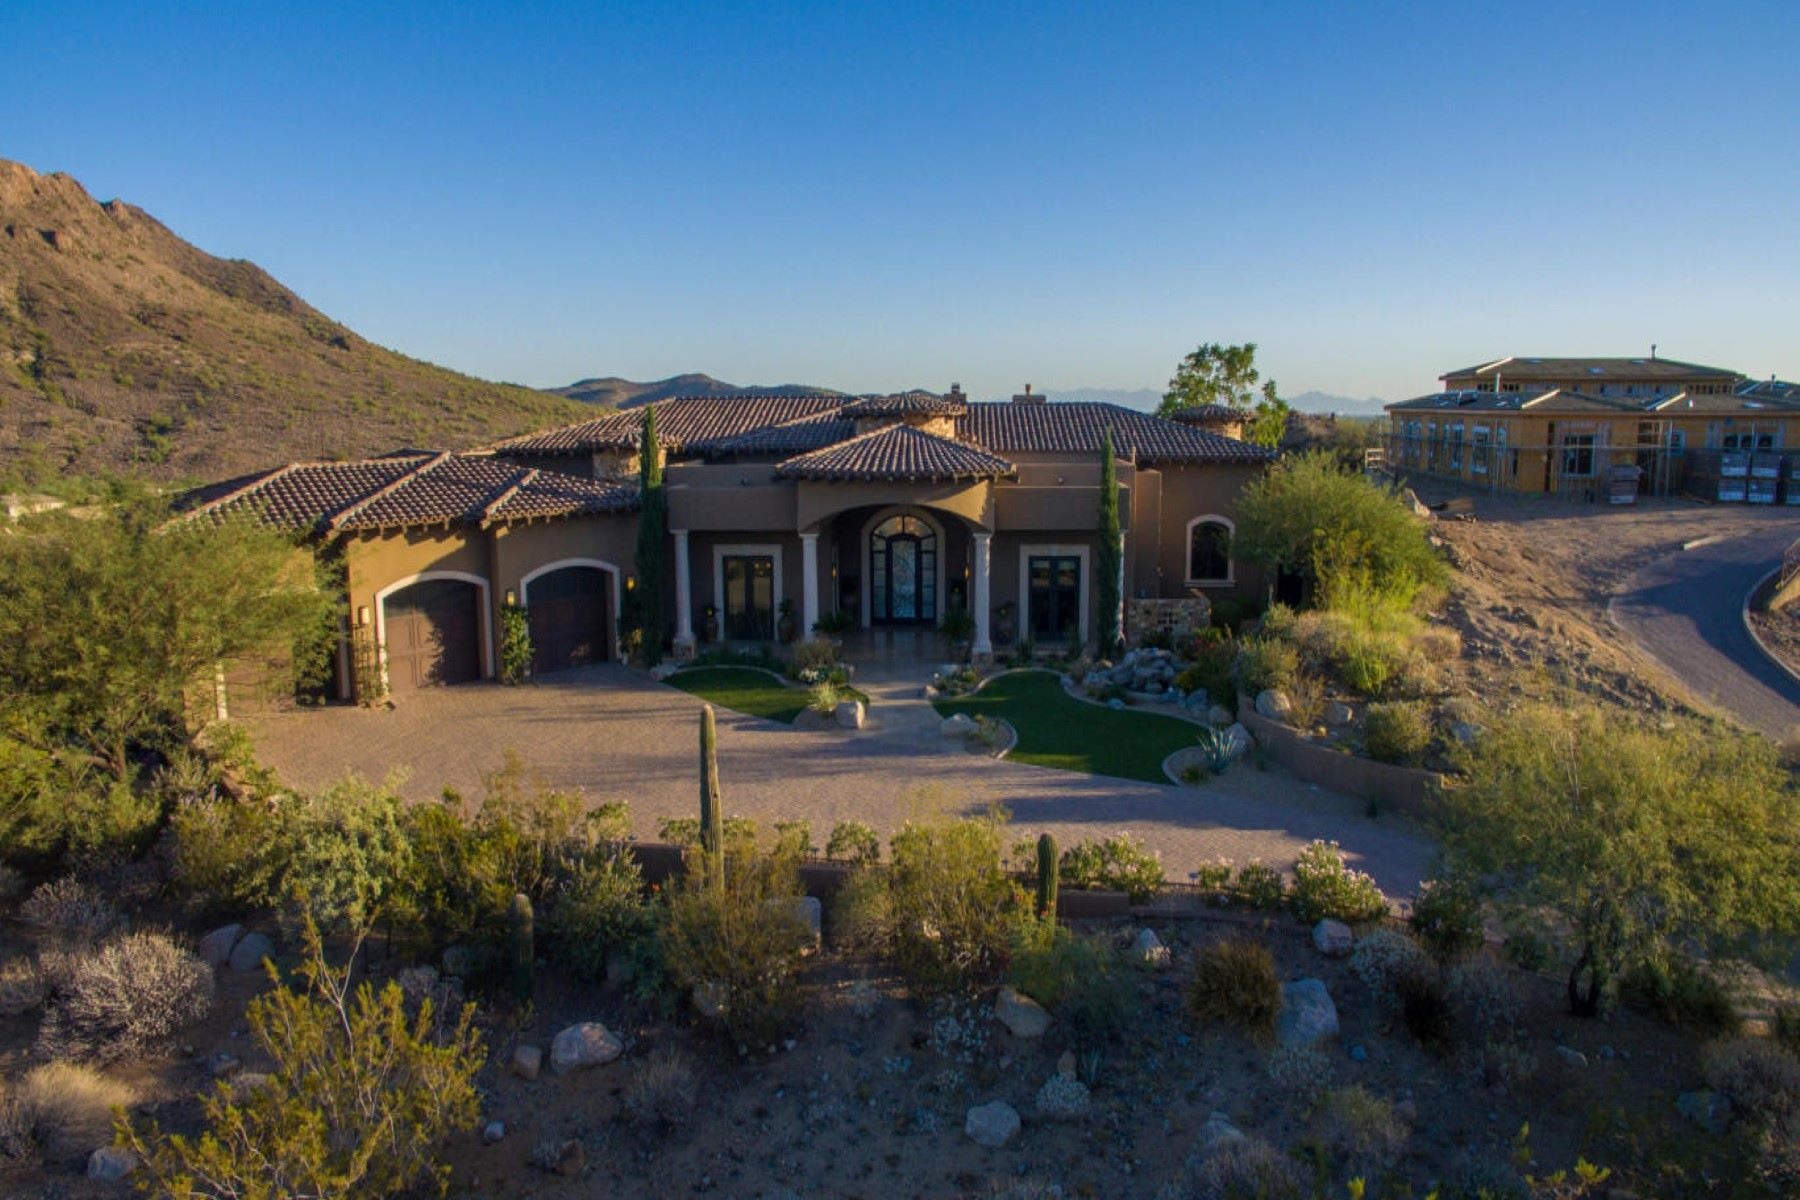 단독 가정 주택 용 매매 에 Spectacular Home on 1.4 Acres in Gold Mountain Preserve 6531 W Gold Mountain Pass Phoenix, 아리조나, 85083 미국